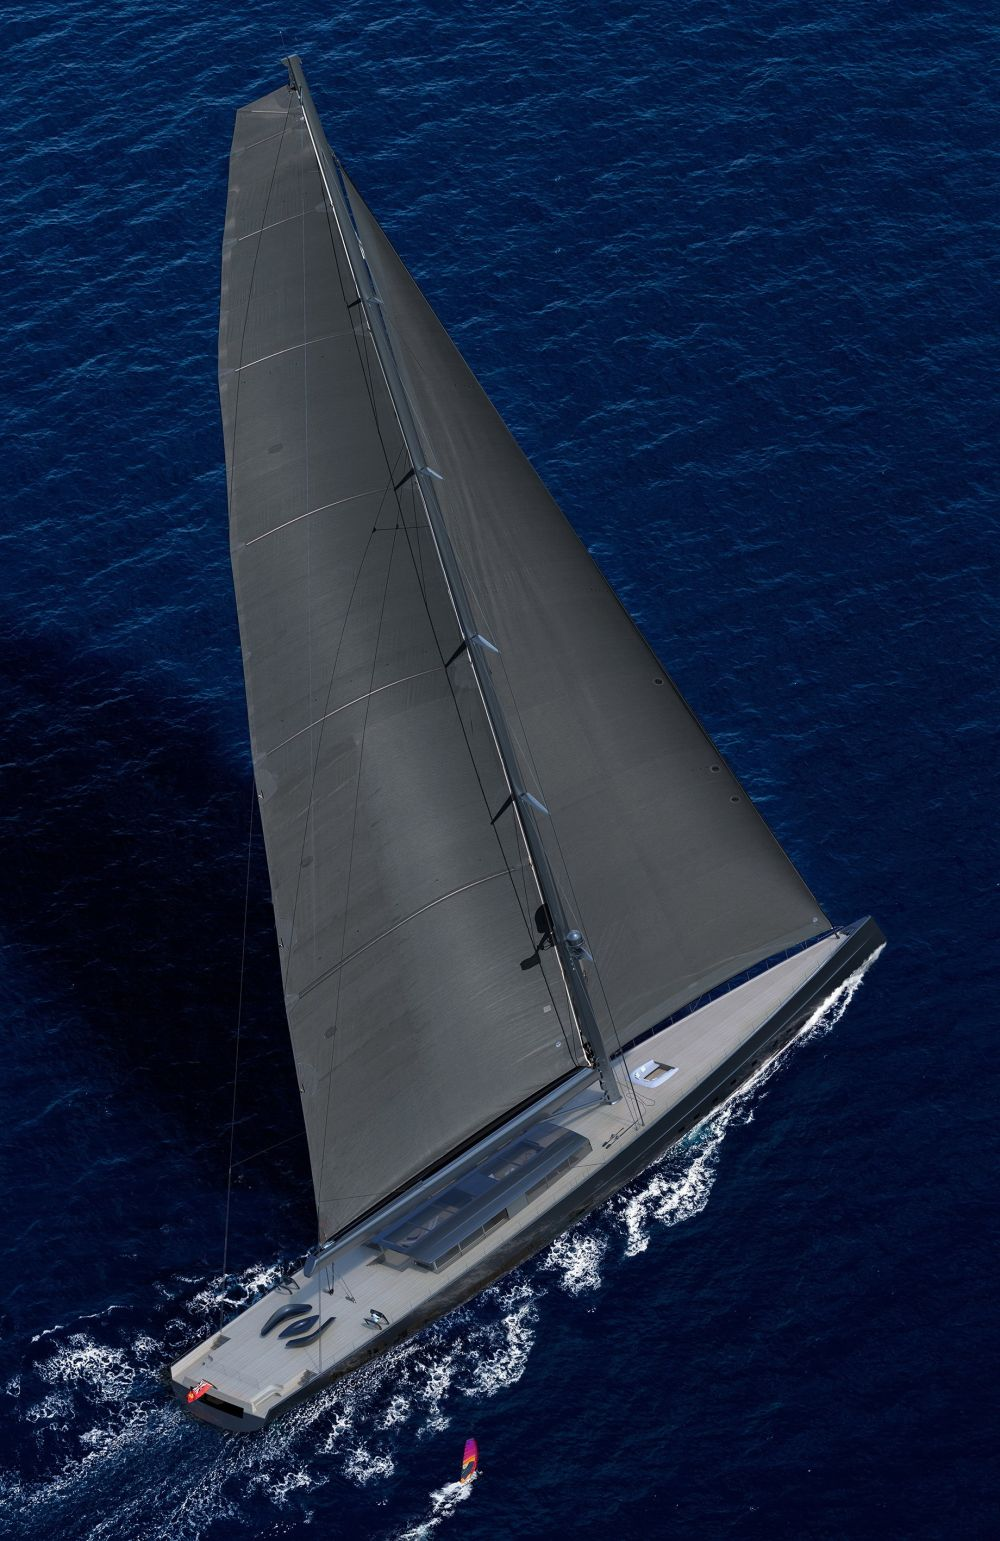 APEX-850 rendering by Solidwave sailing - Royal Huisman Unveiled World's Largest Sloop